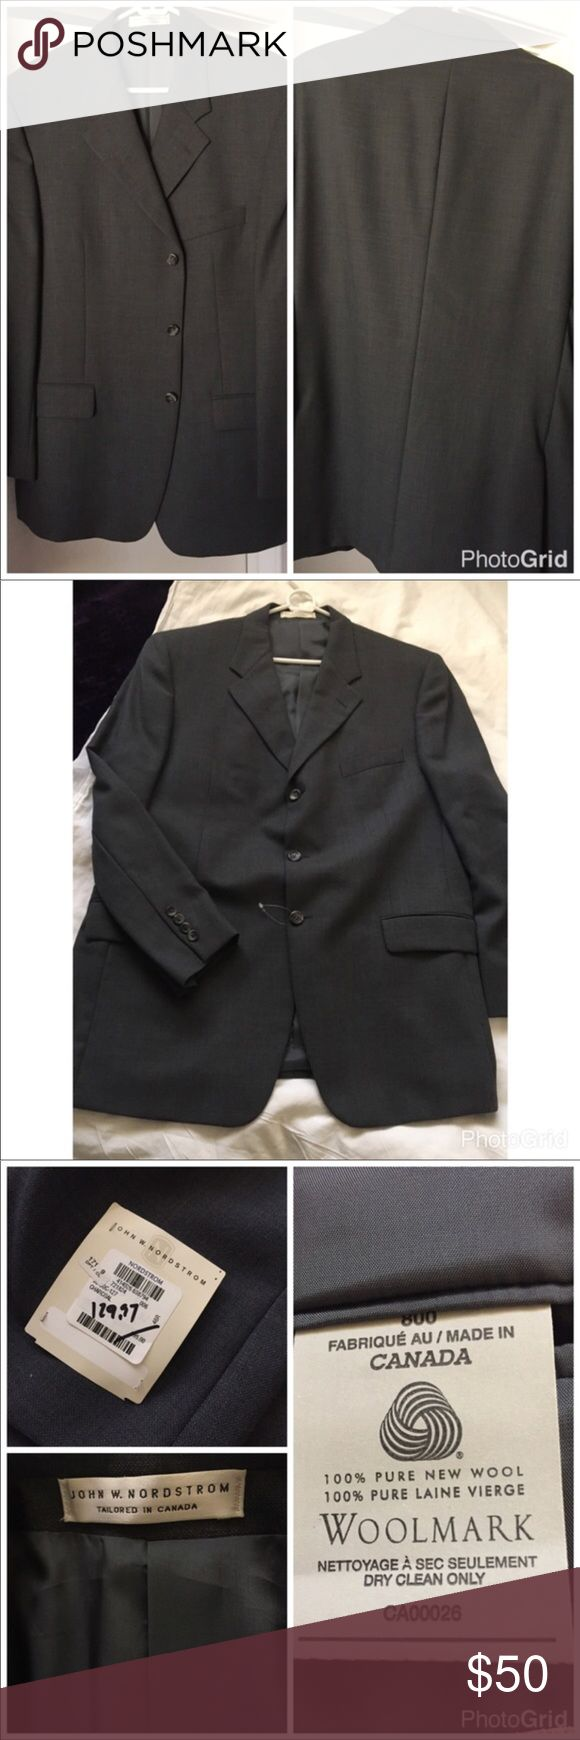 Men's Sports Coat Classic 3 button closure sports coat. Color is  charcoal NWT. 100% pure new wool see pic of tags. Fully lined with inside pockets. Outside pockets unstitched. A little thread out of place see last picture. Overall a very nice jacket. Please lmk if you need measurements. 😍 Tailored In Canada 🇨🇦 John W. Nordstrom Suits & Blazers Sport Coats & Blazers